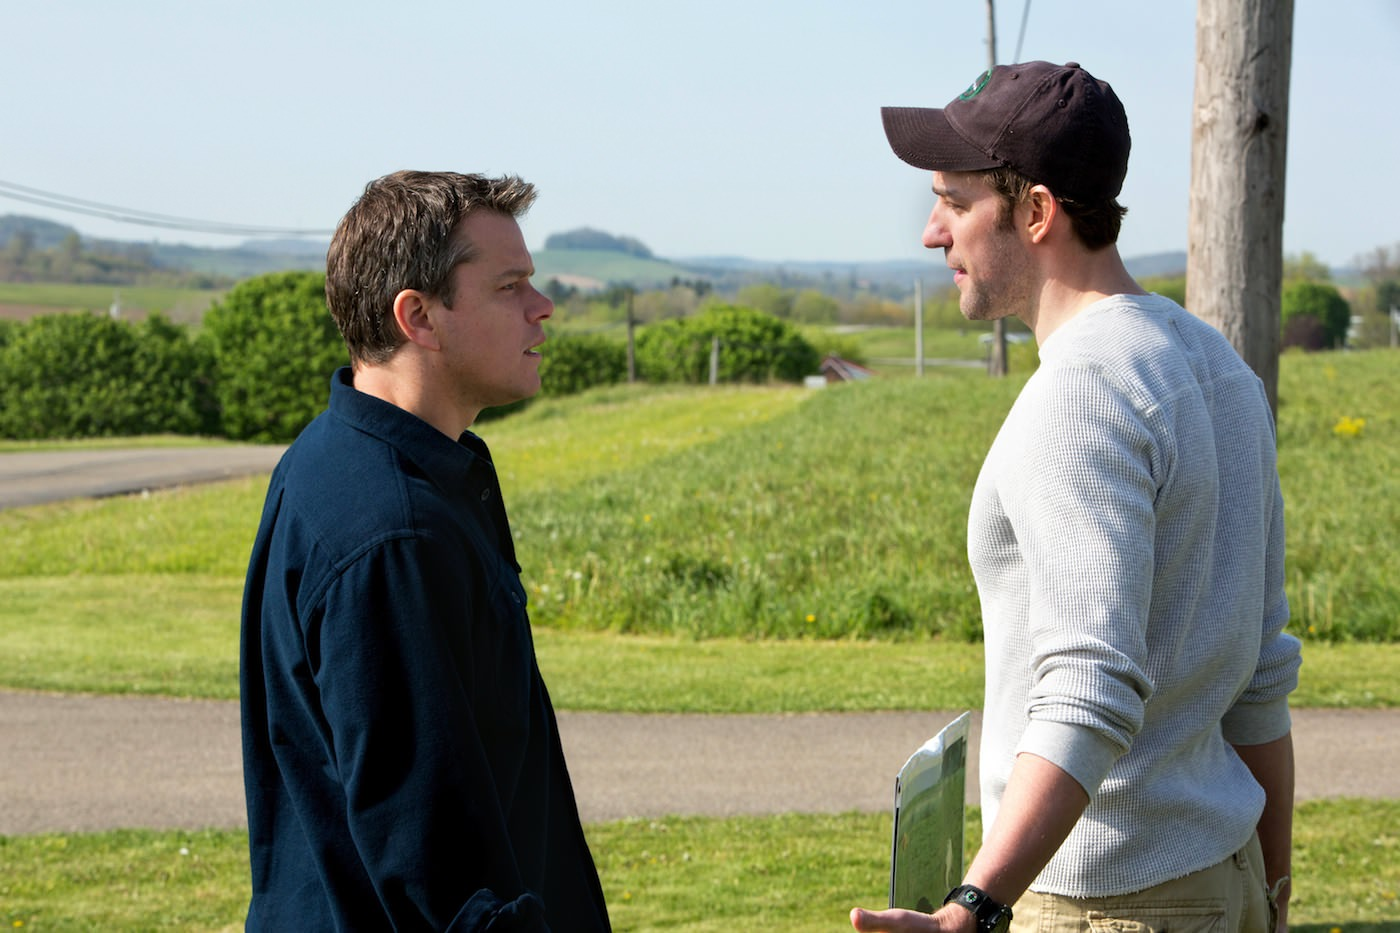 Promised land van sant matt damon john krasinski